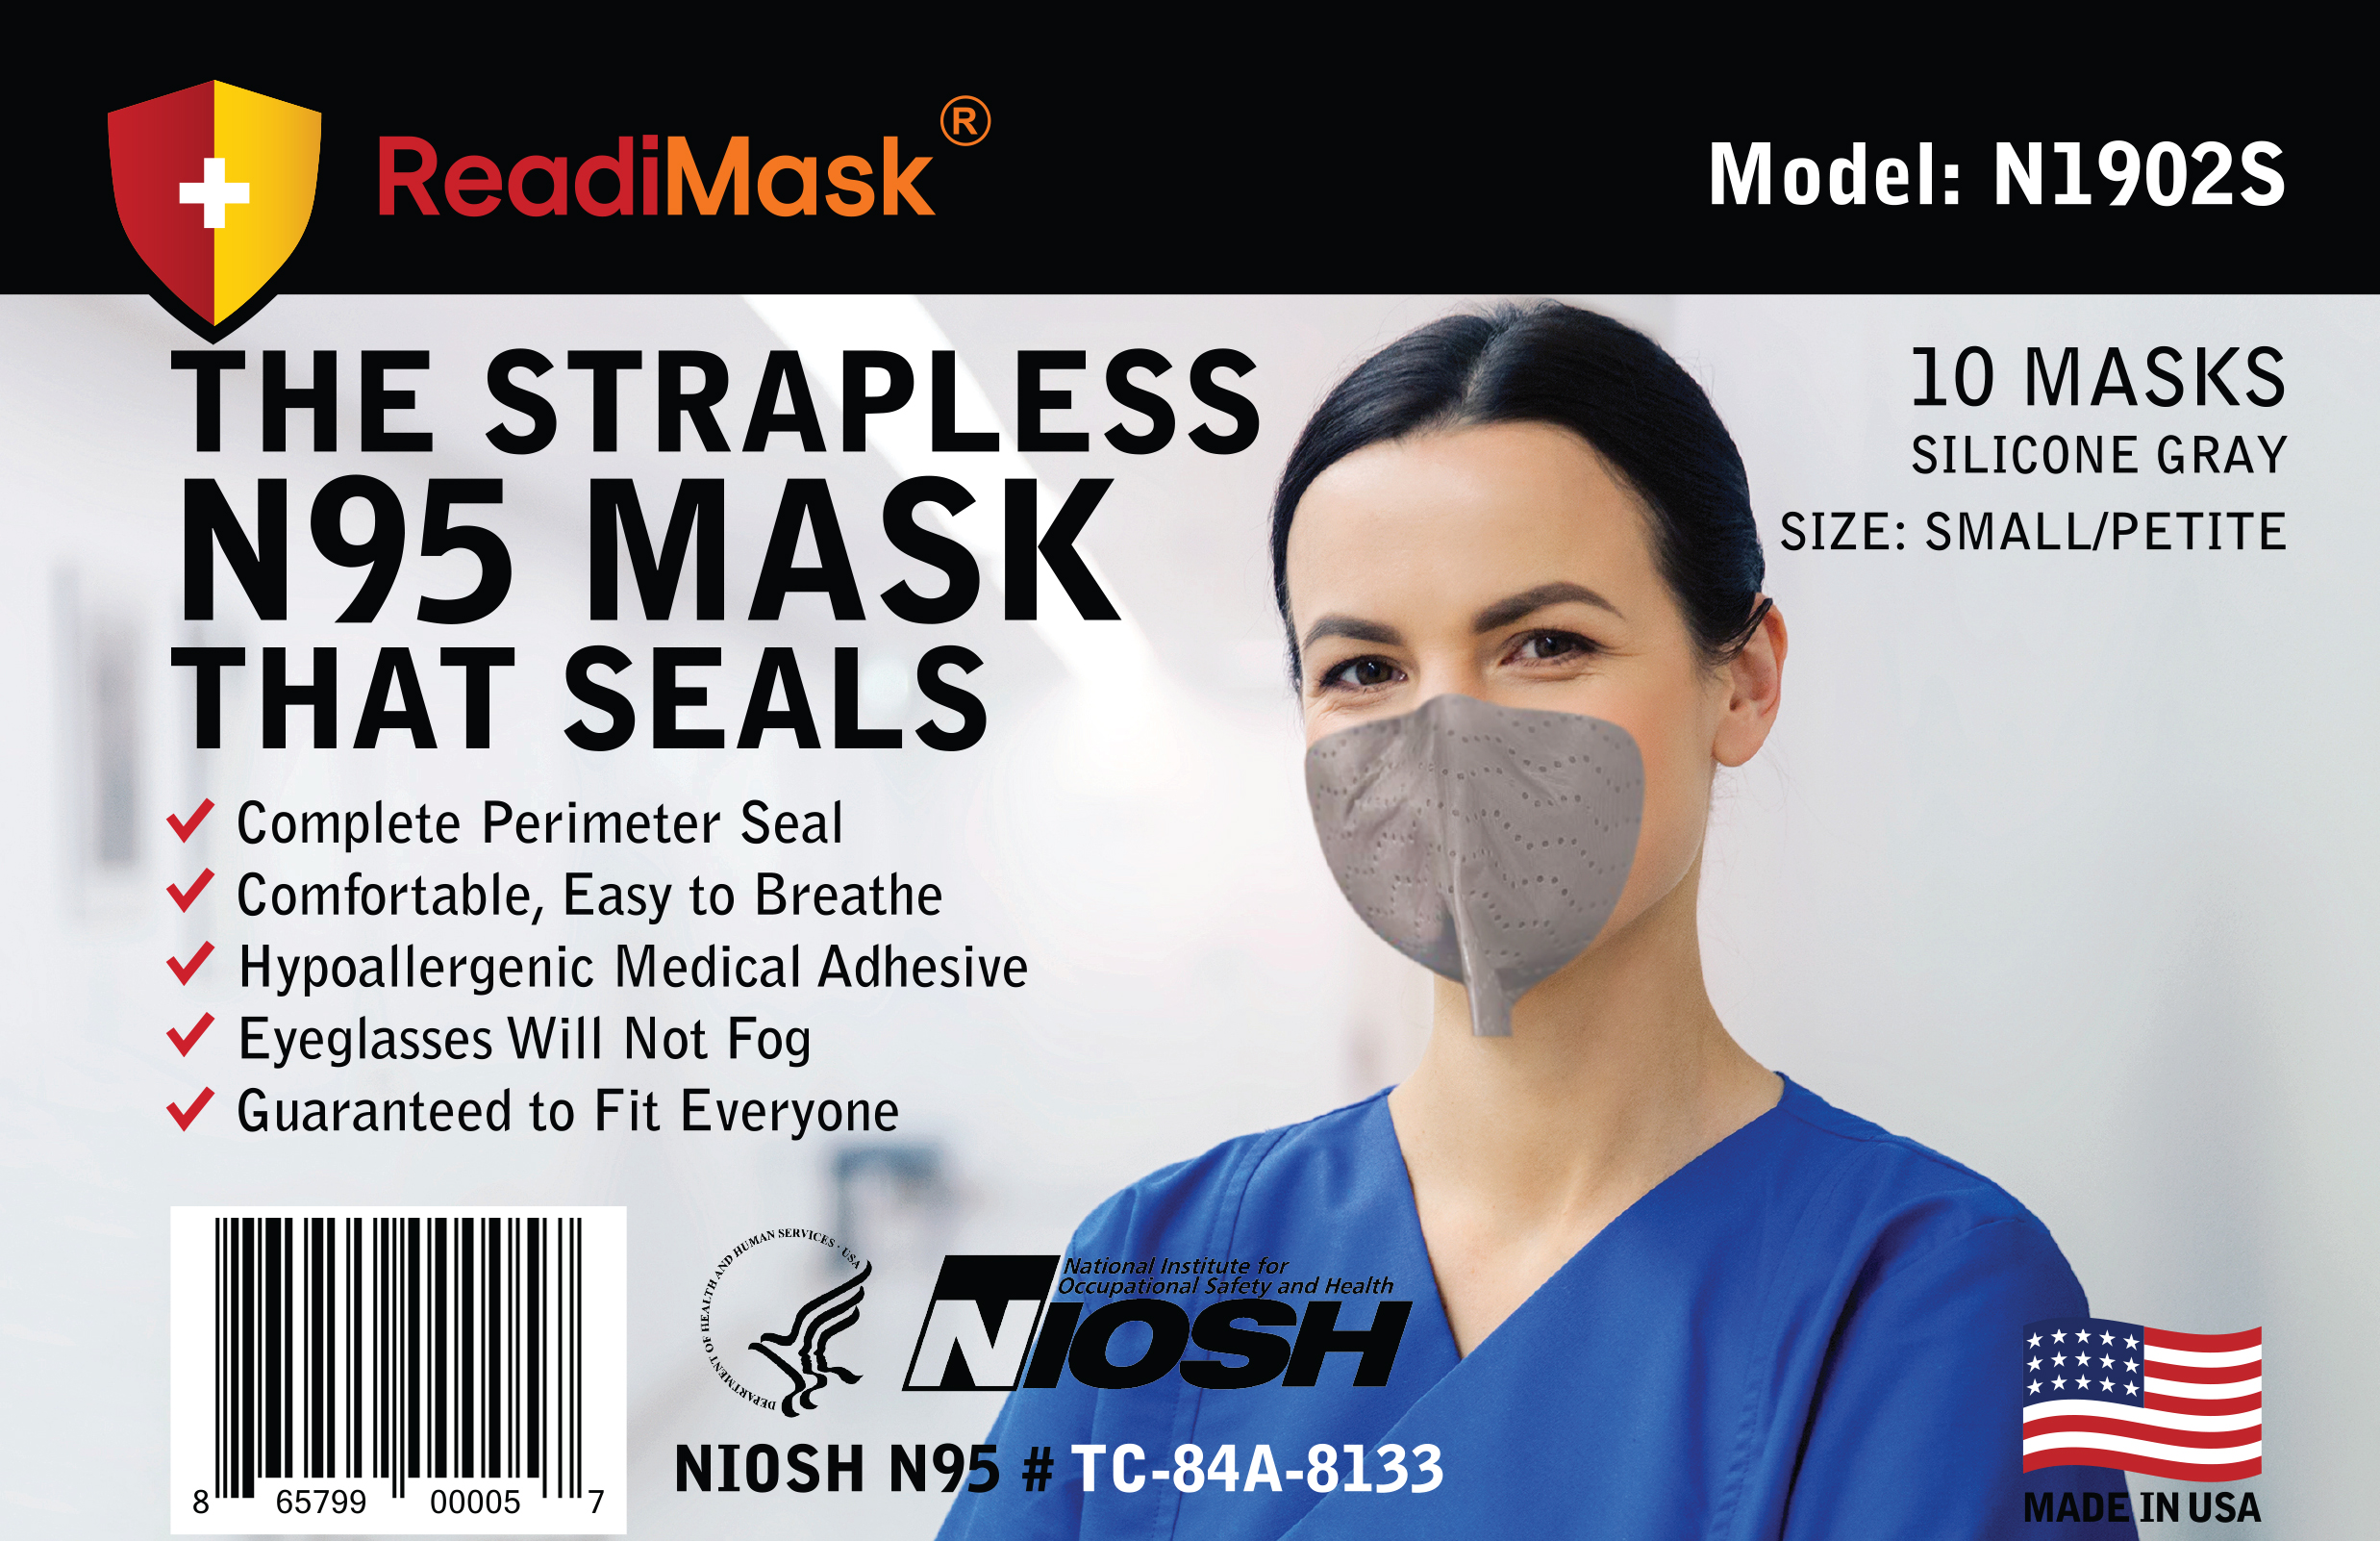 Monthly Subscription - N95 Small/Petite Gray - No Shield 10 Pack NIOSH Approved N95 Respirators